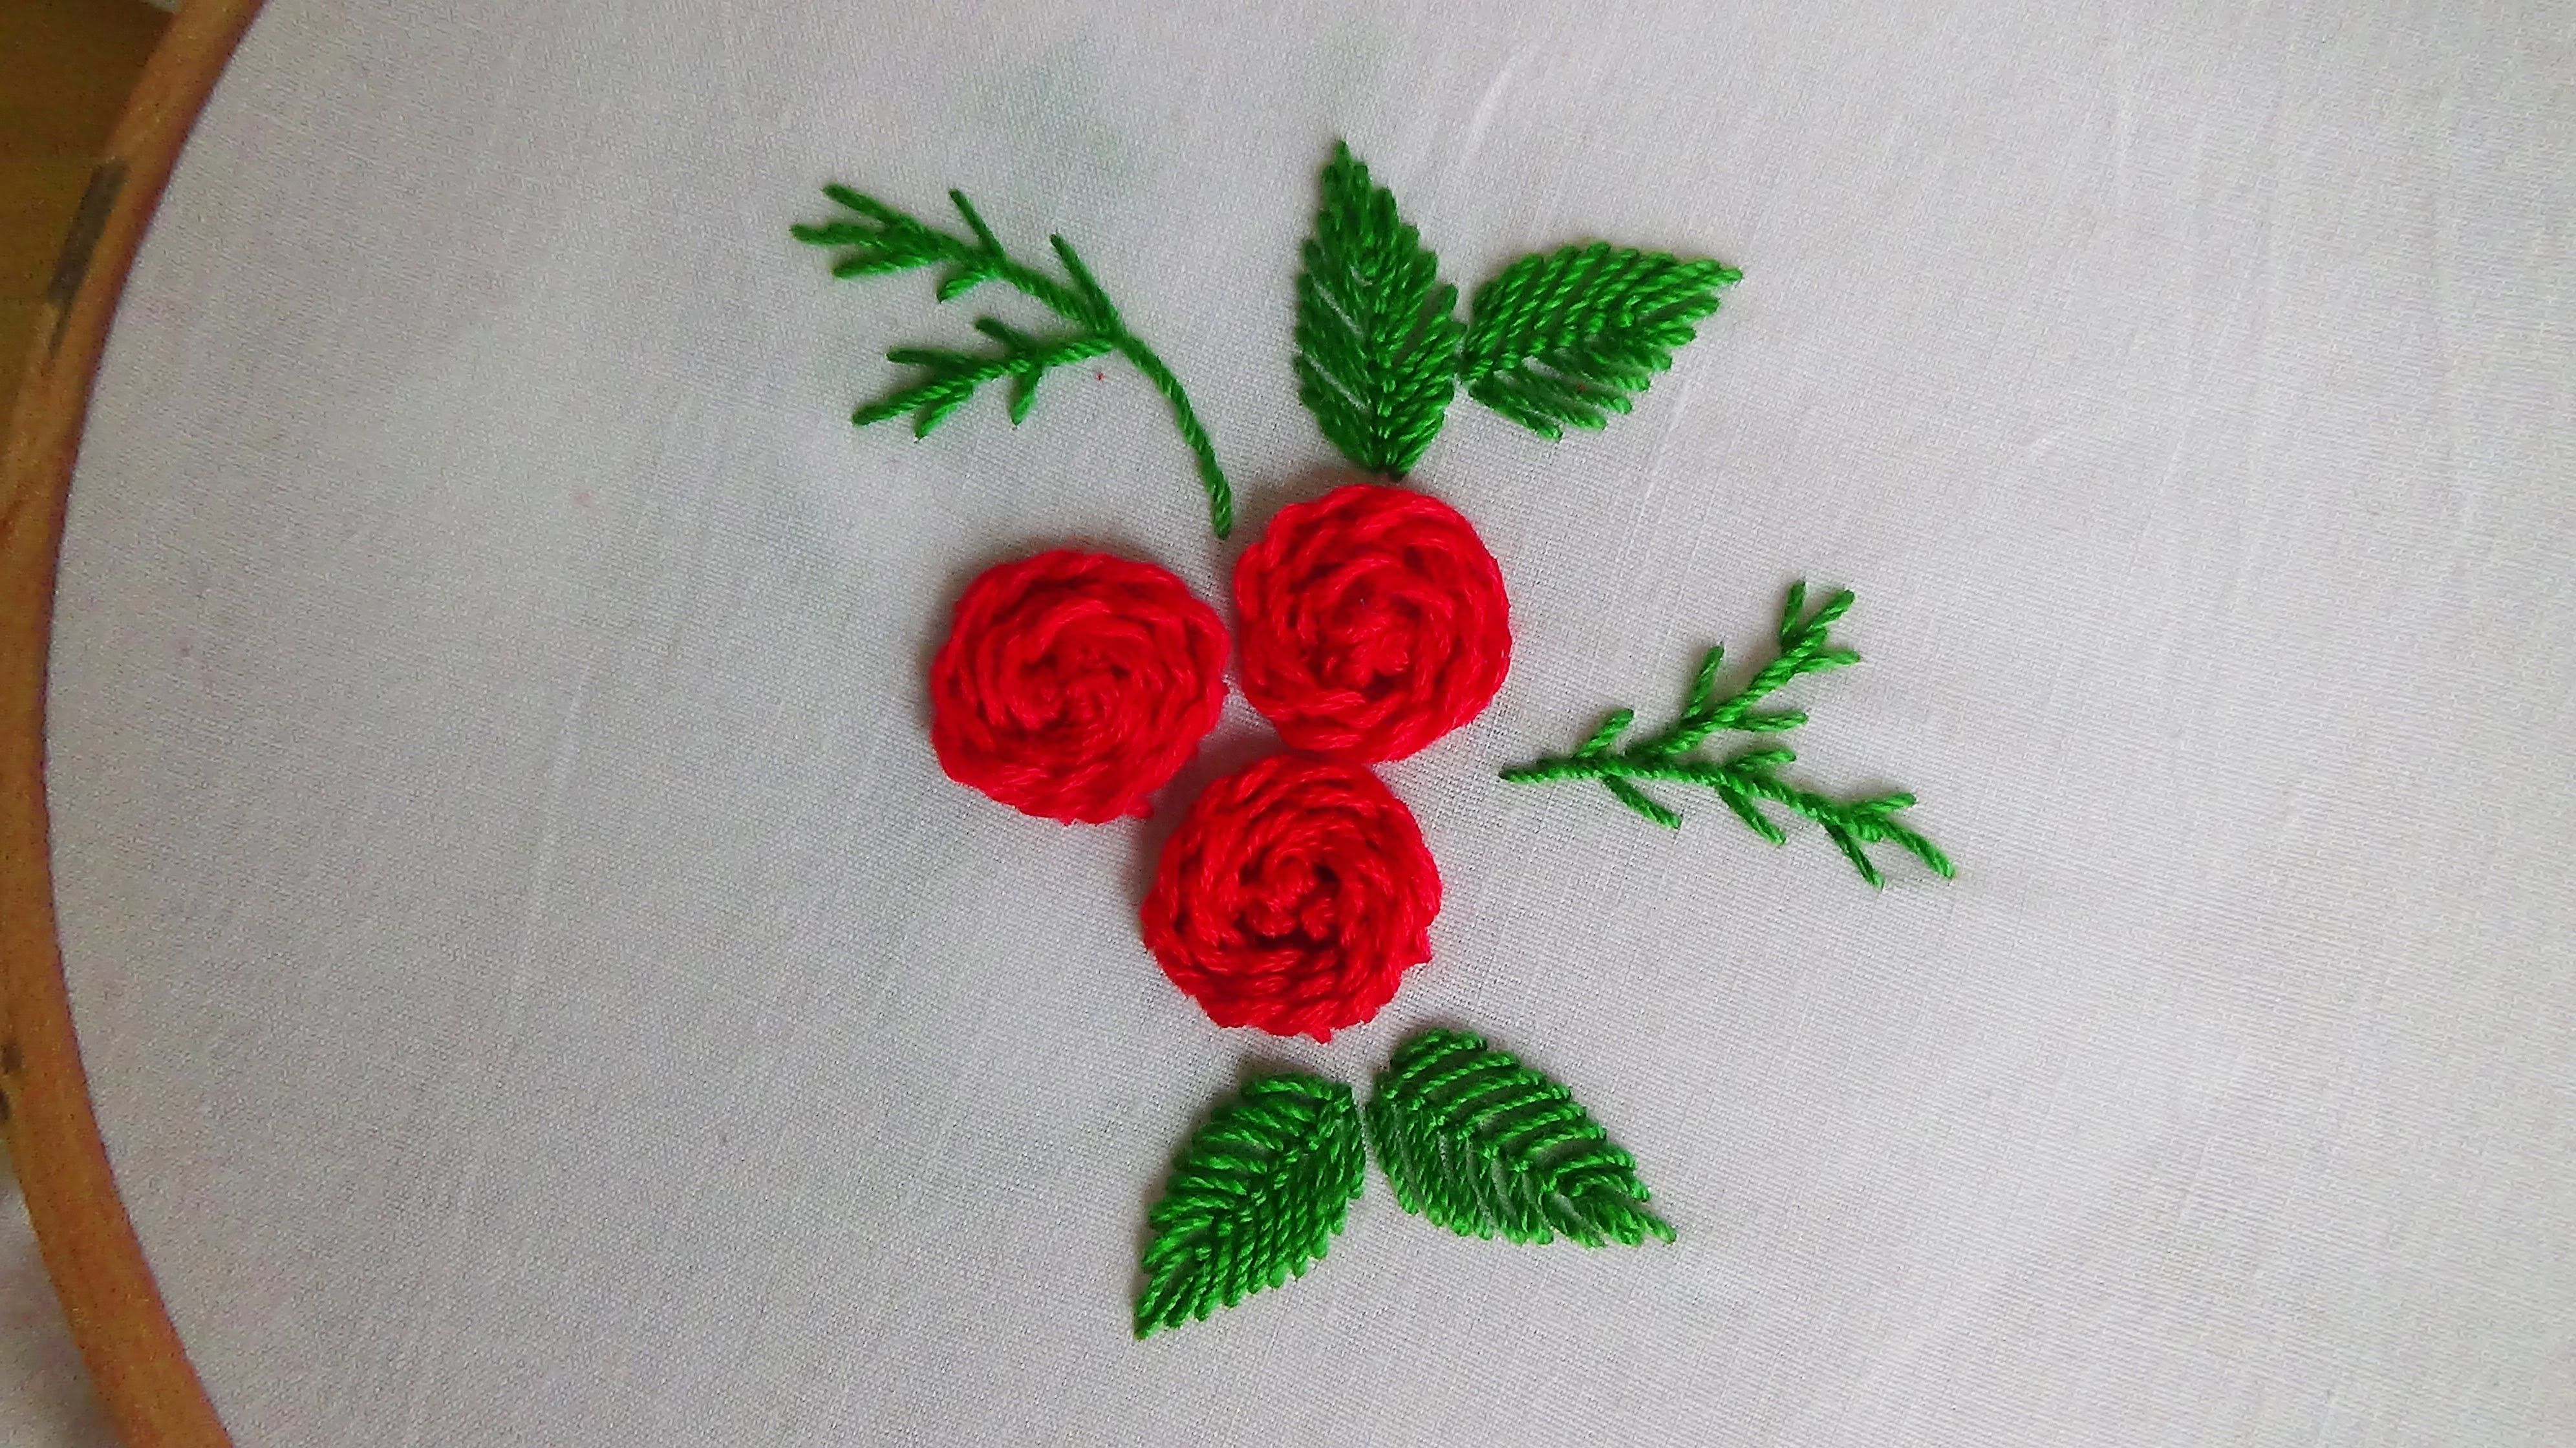 Hand embroidery stem stitch roses embroidery stitches